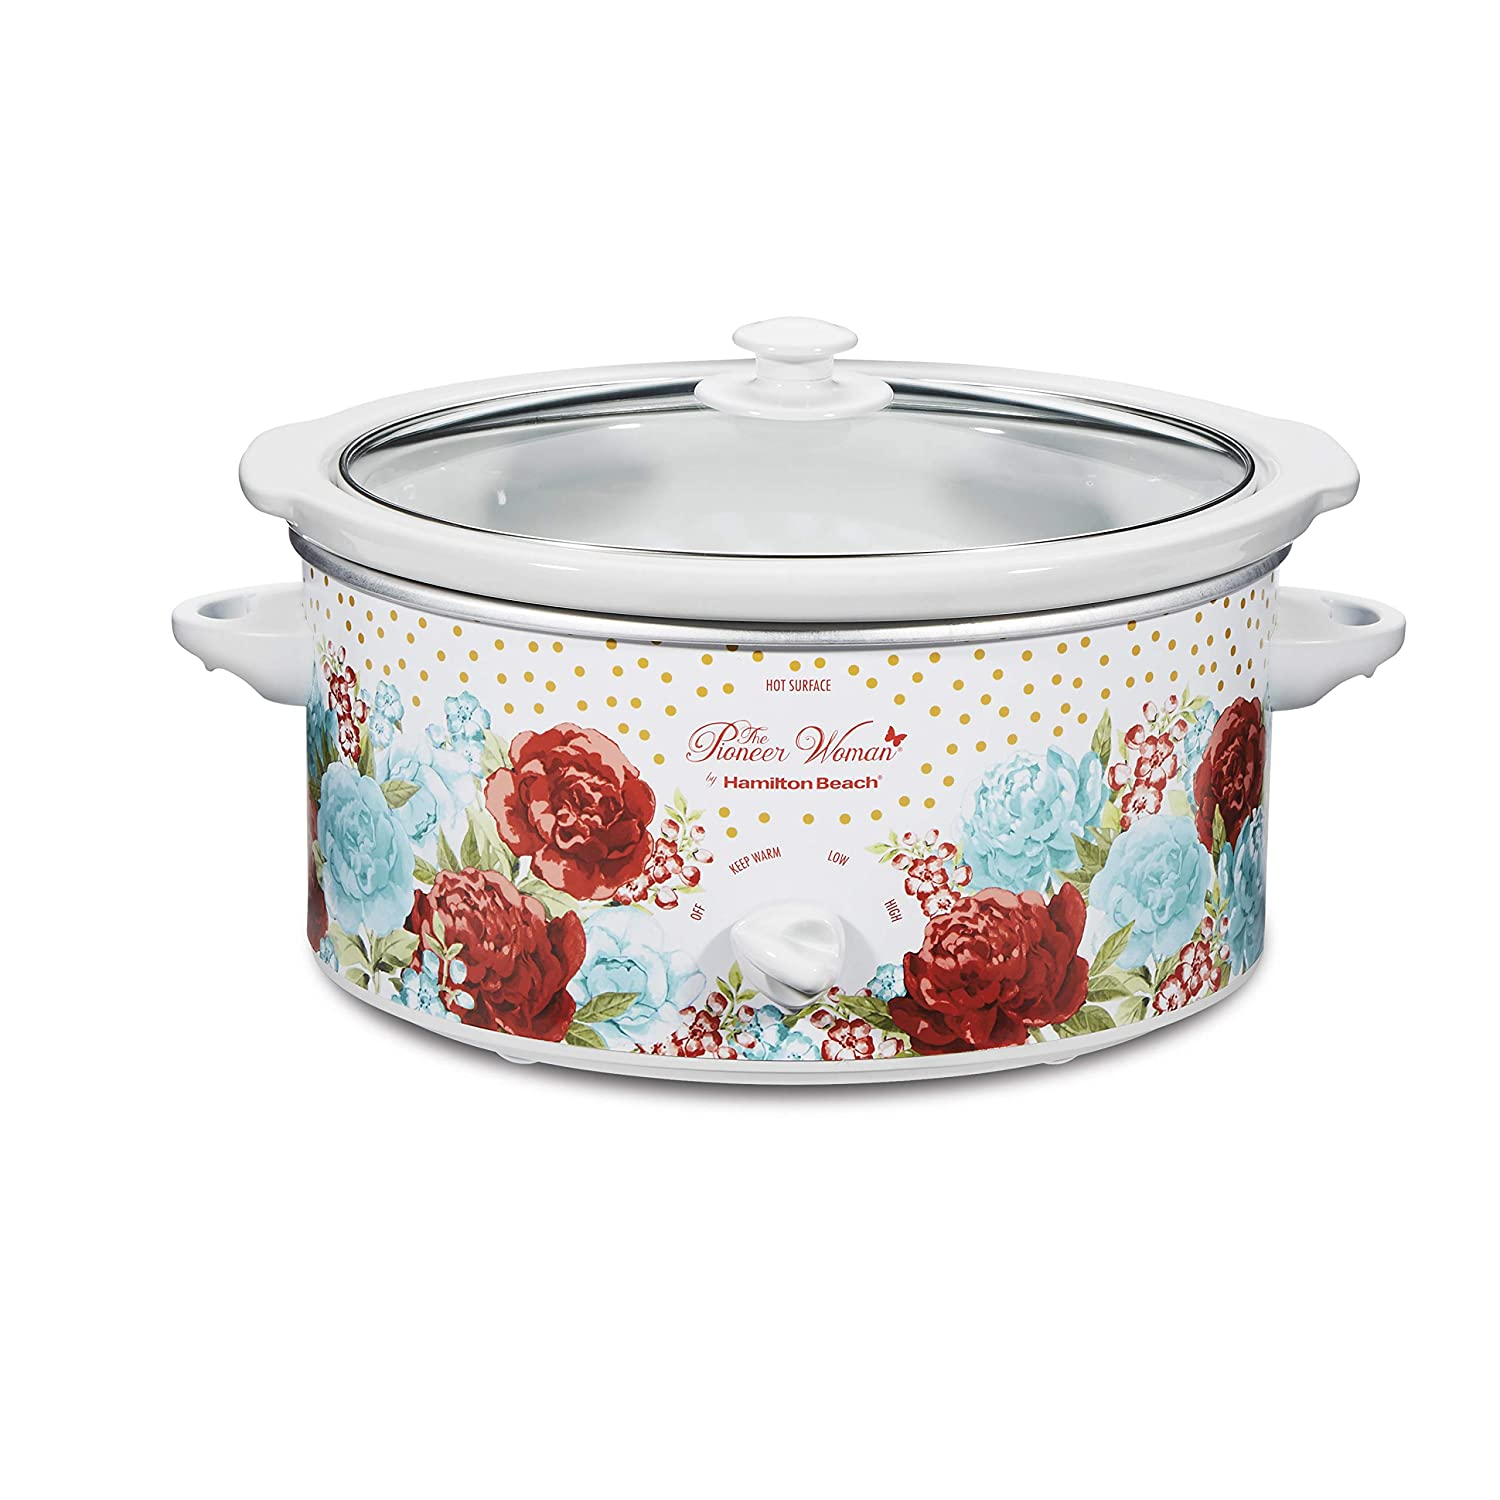 Pioneer Woman 5 Quart Slow Cooker Blossom Jubilee (L x W x H) 11.26 x 15.24 x 8.78 Inches